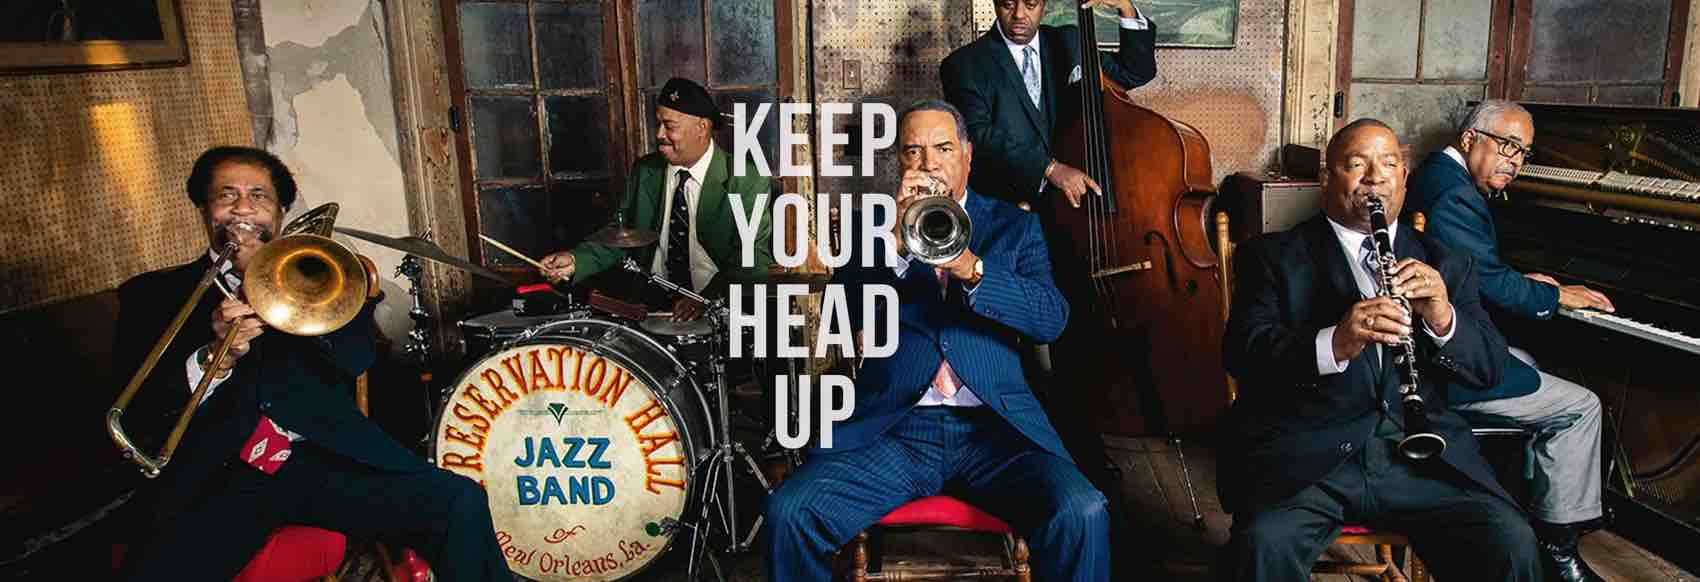 Keep your Head Up. This jazz band is the oldest, most likely in action at Preservation Hall